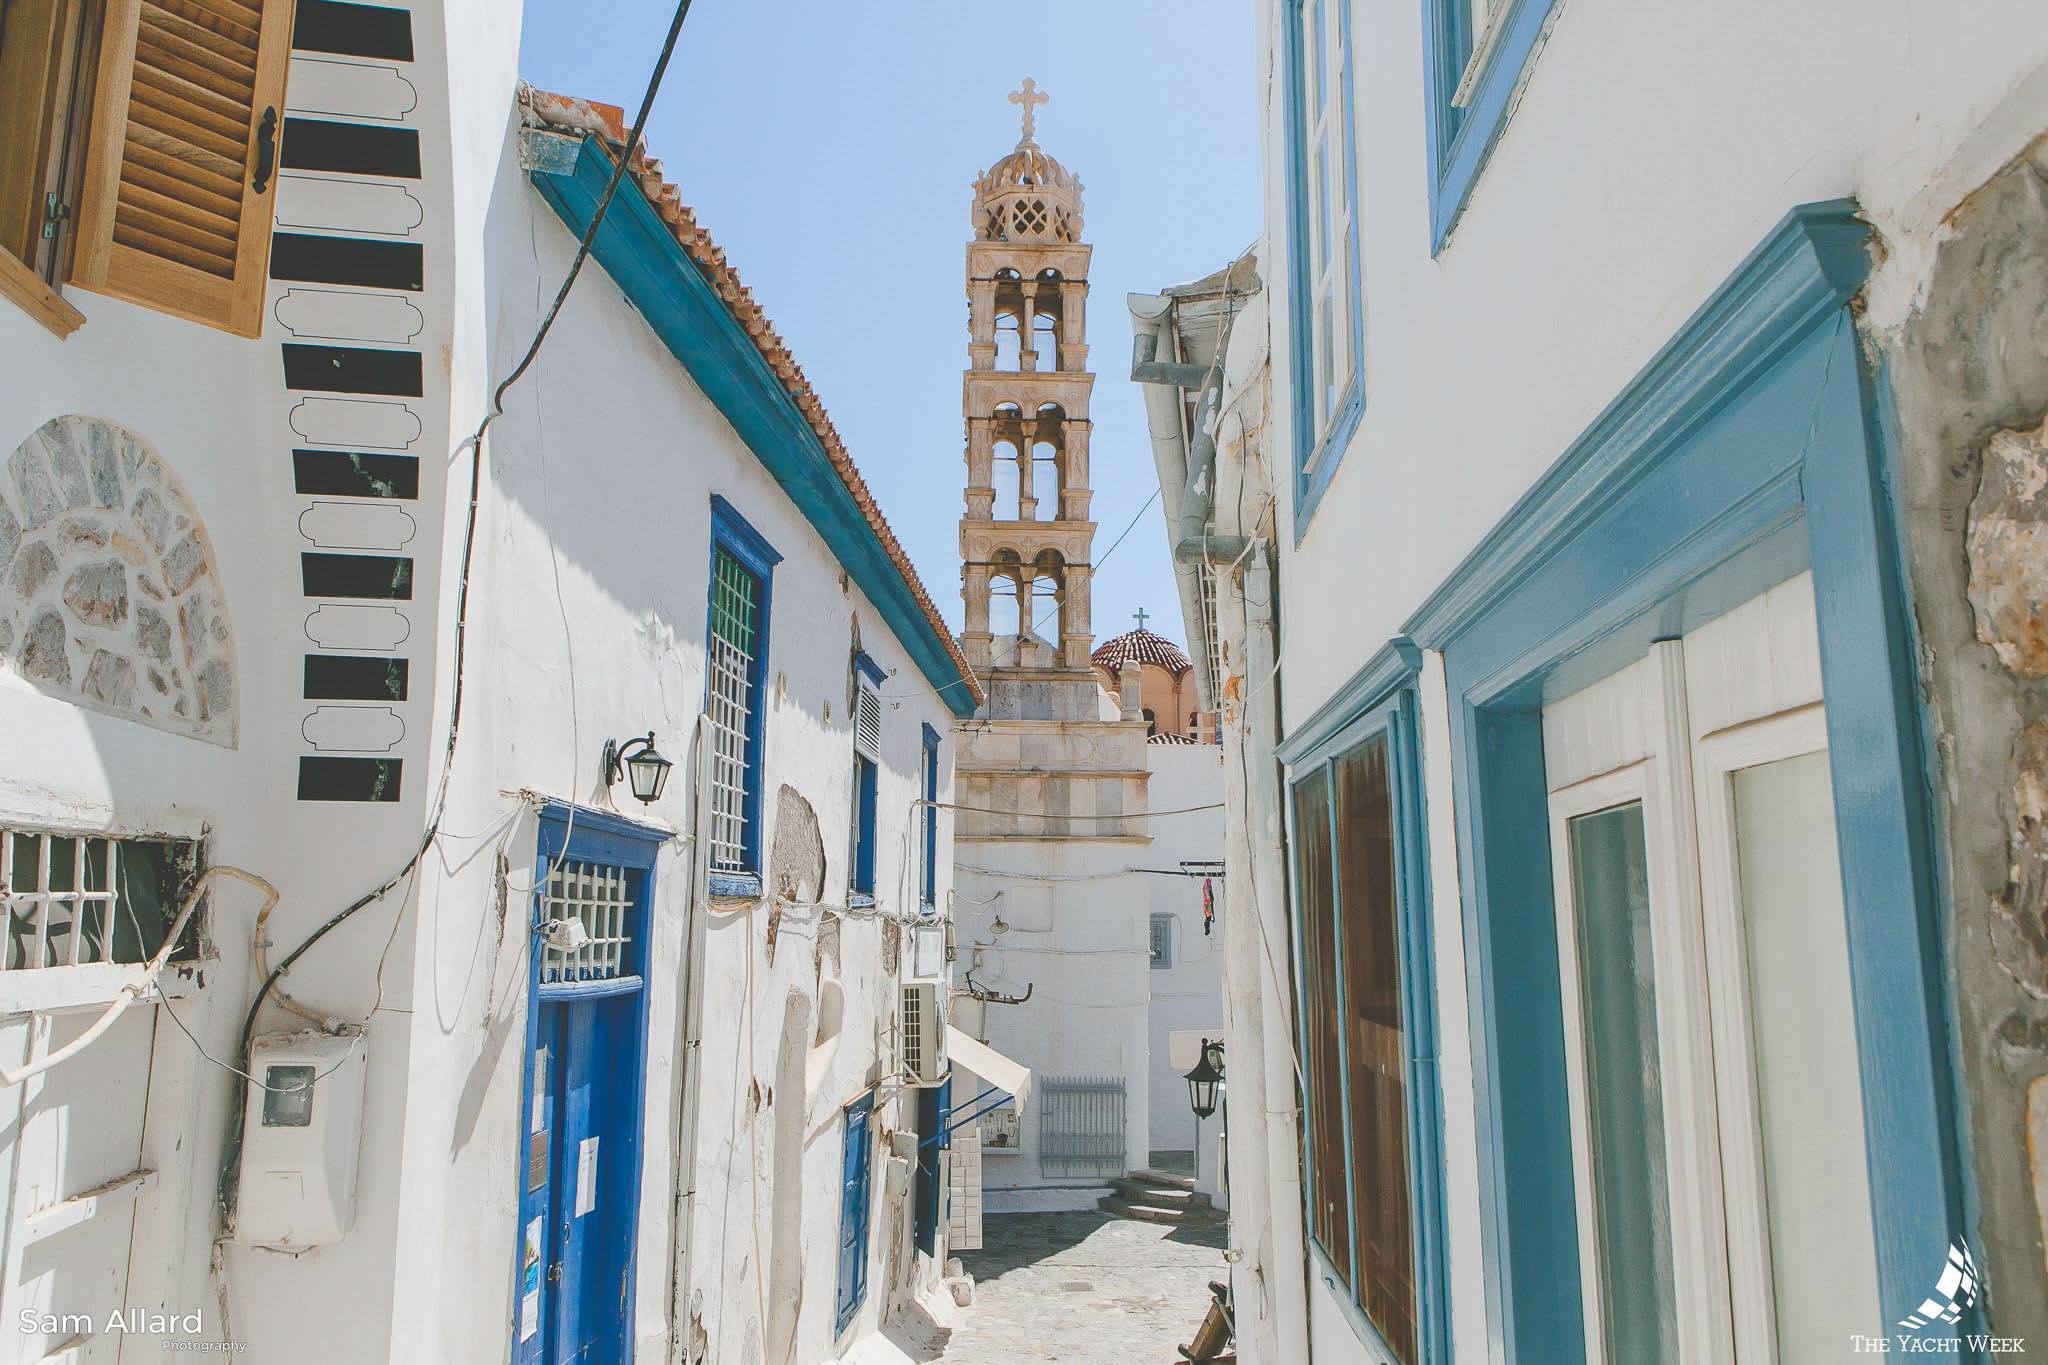 Exploring in Hydra, Greece with The Yacht Week